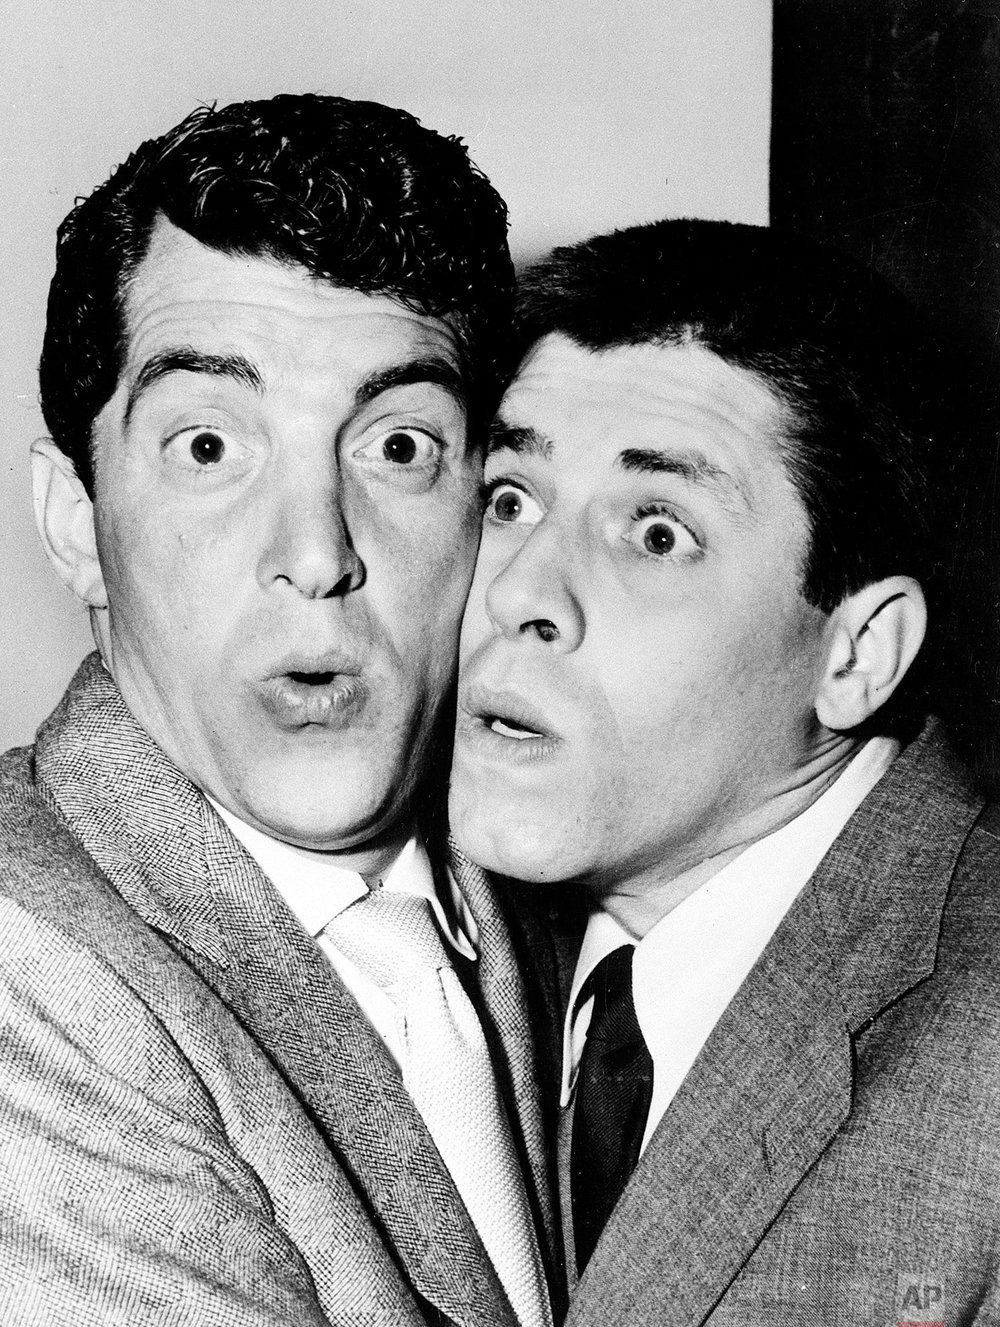 American entertainers Dean Martin, left, and Jerry Lewis pretend to be overwhelmed by the crowd in London, England, June 9, 1953.  The comedy duo will appear at the Glasgow Empire and at the London Palladium.  (AP Photo)